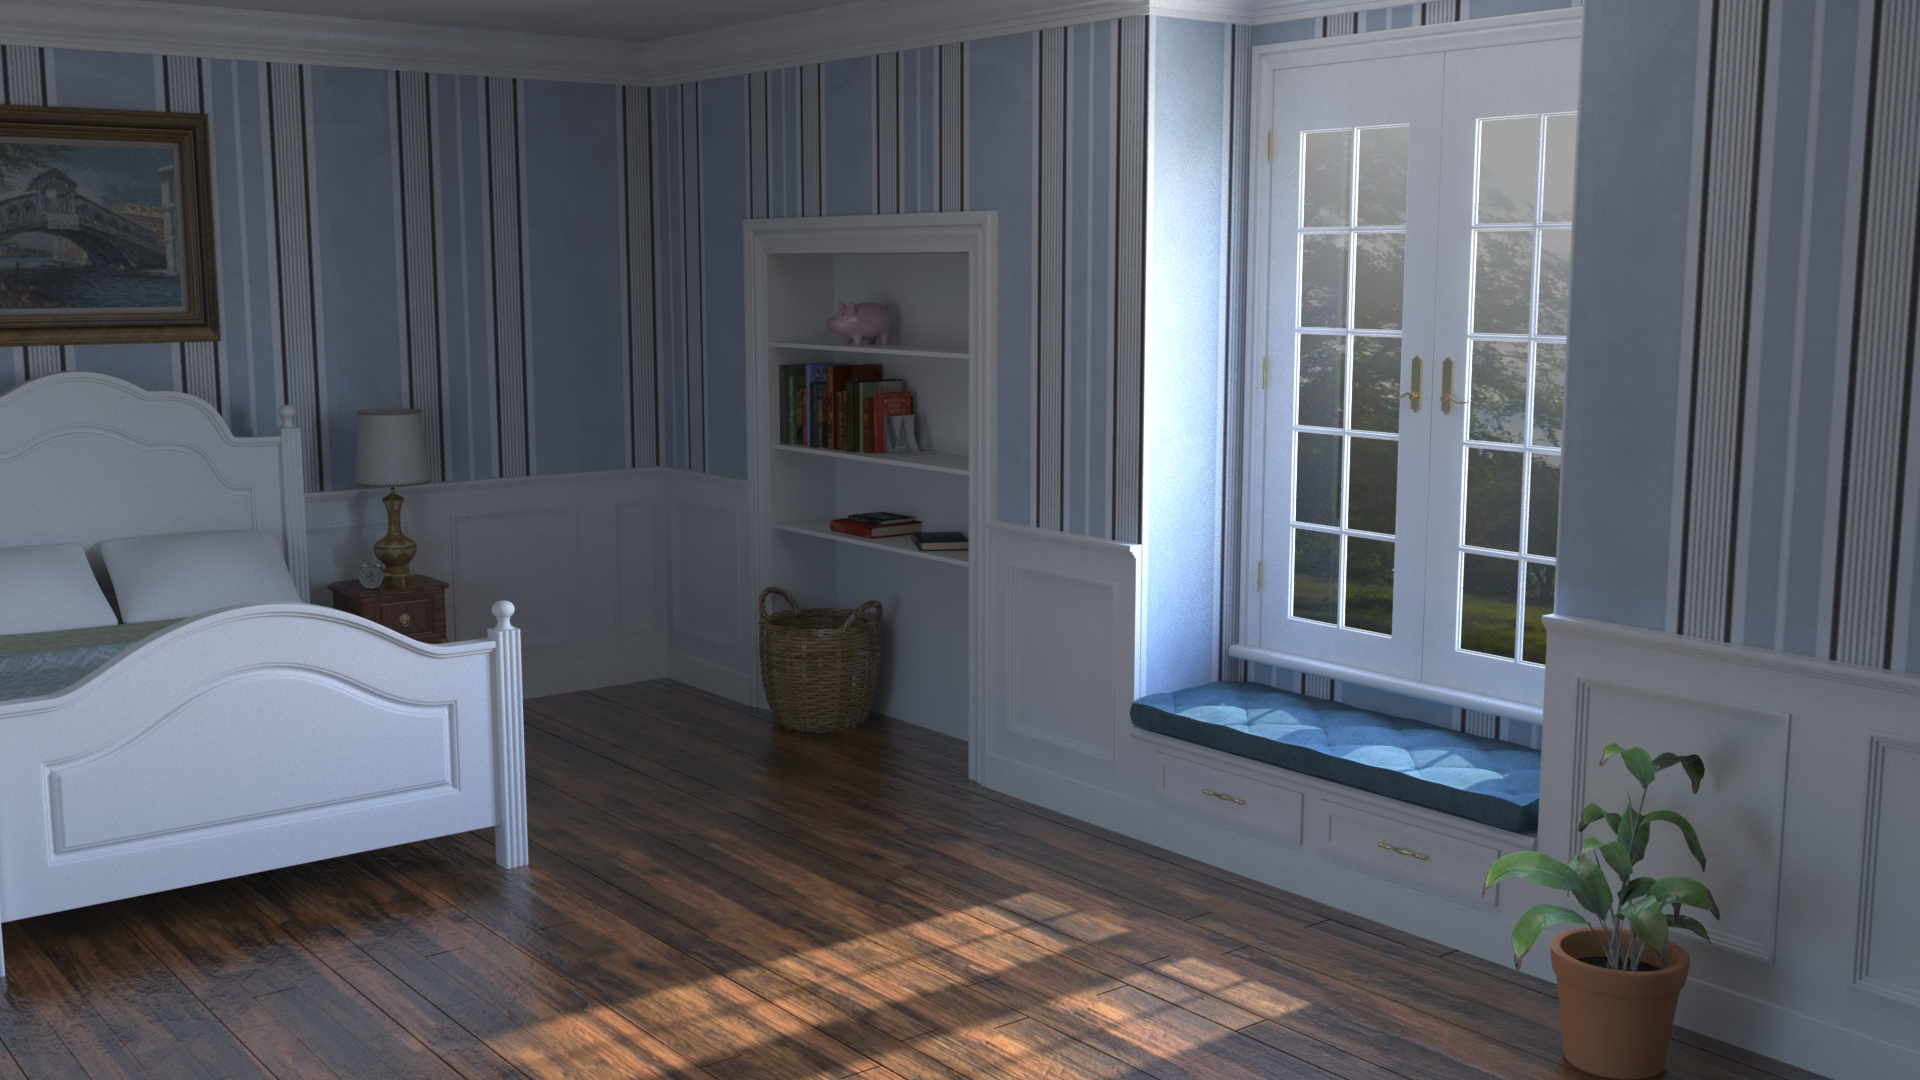 Bedroom Lighting and Texturing